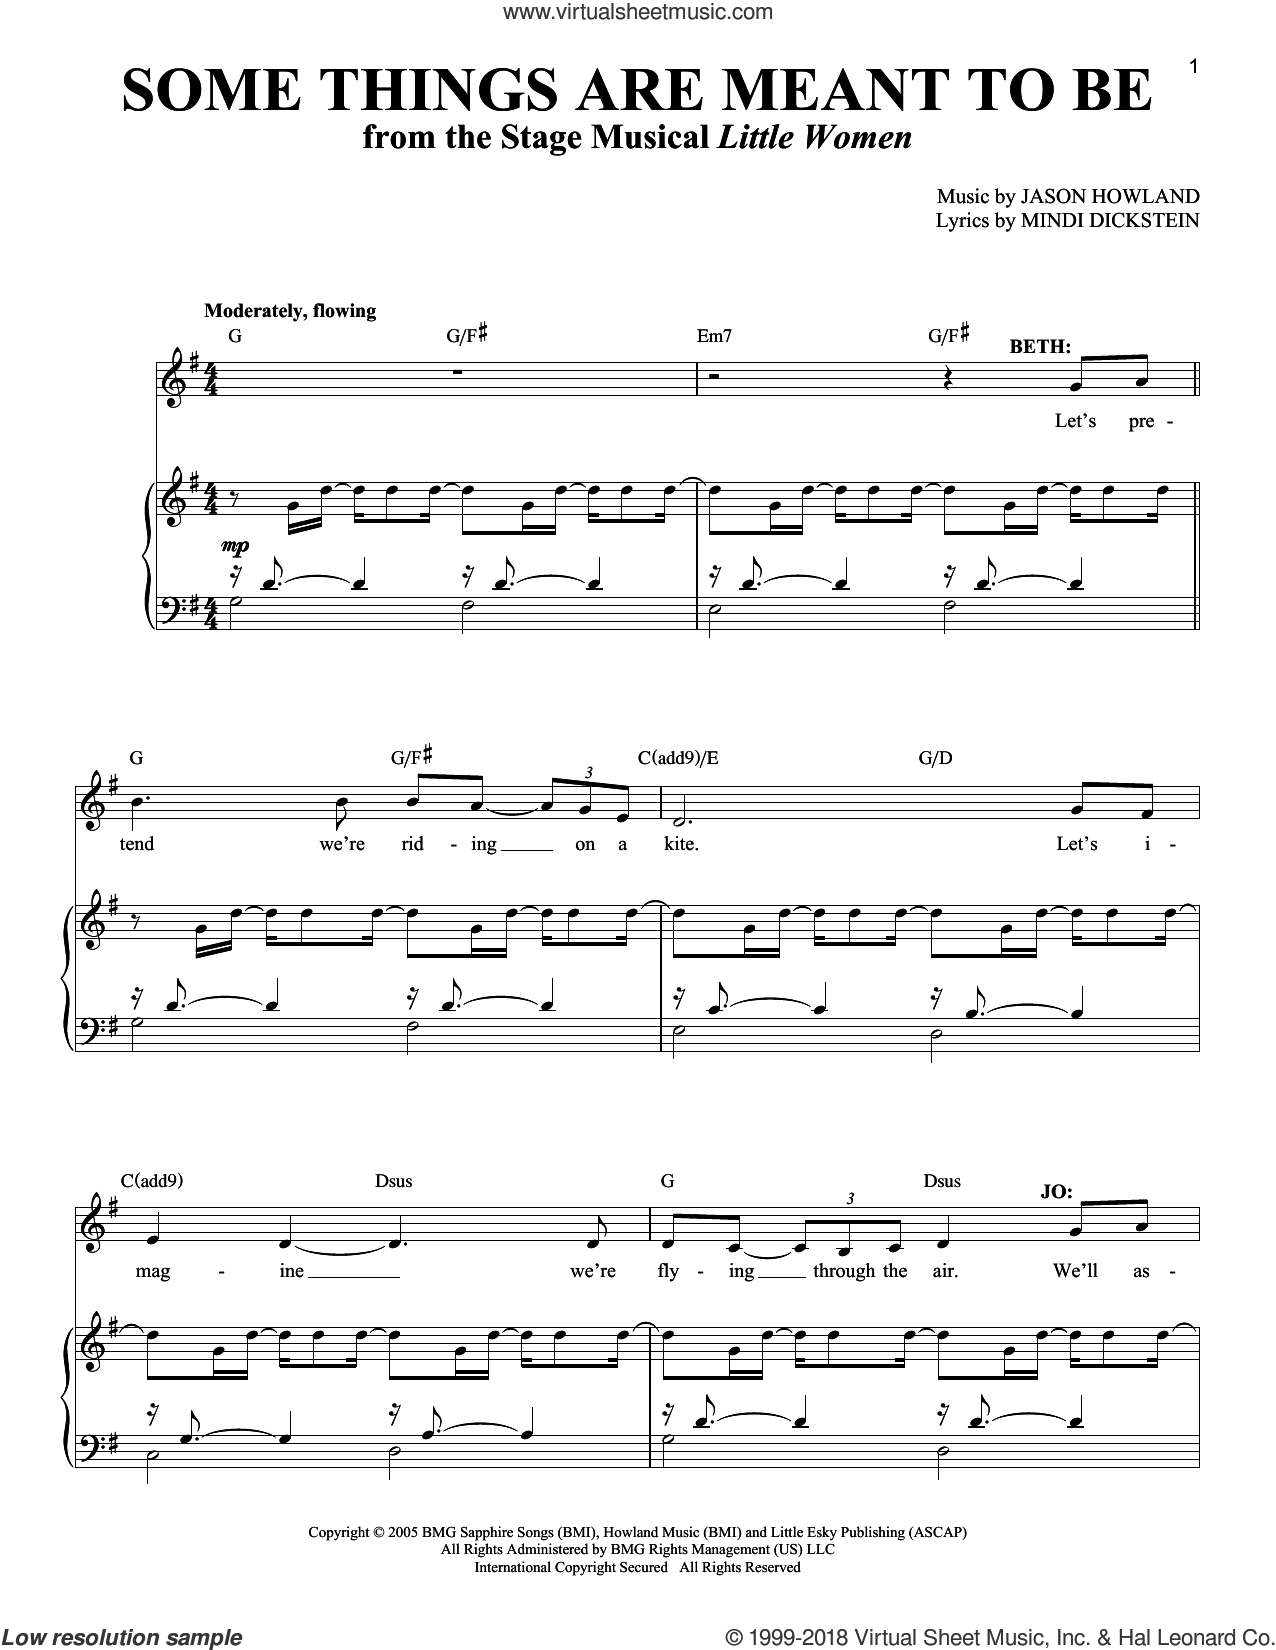 Some Things Are Meant To Be sheet music for two voices and piano by Jason Howland, Richard Walters and Mindi Dickstein, intermediate skill level